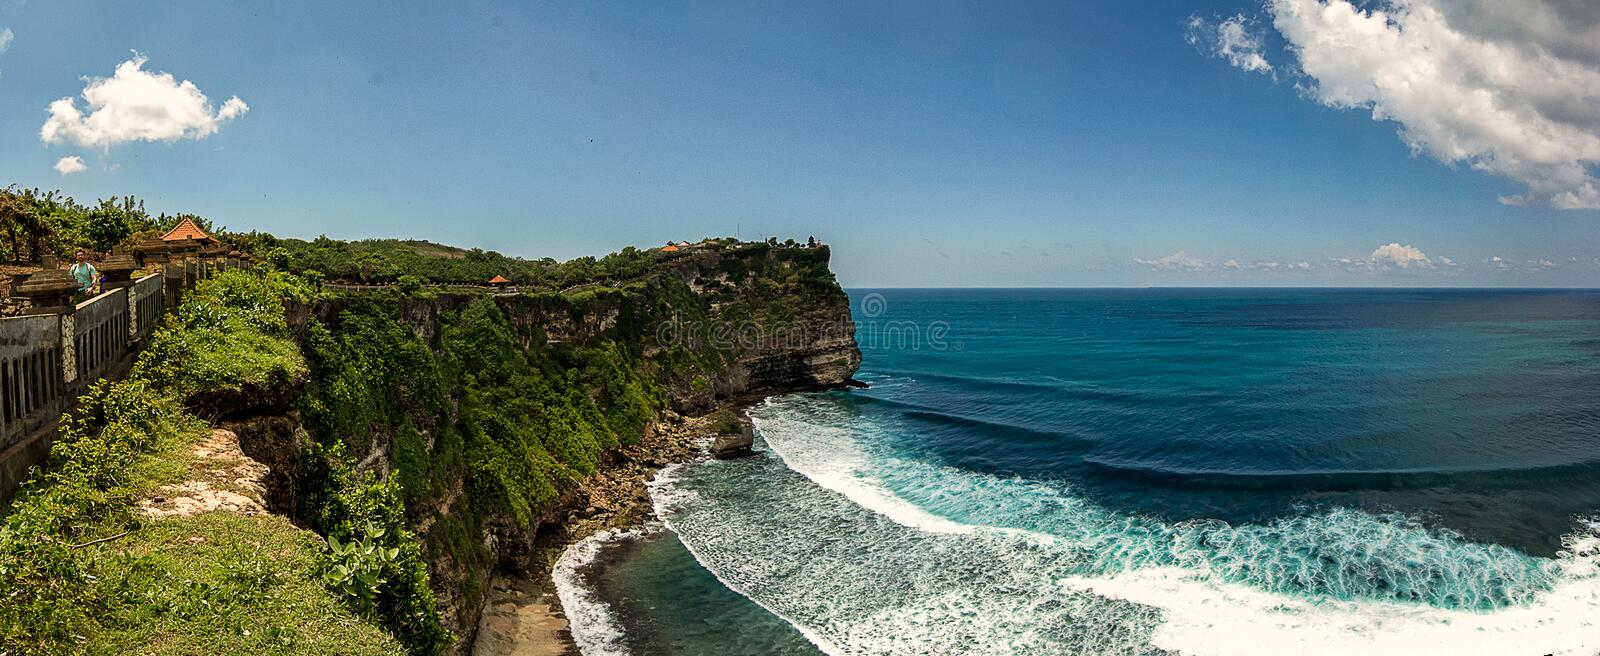 Uluwatu Temple, Bali royalty free stock photo